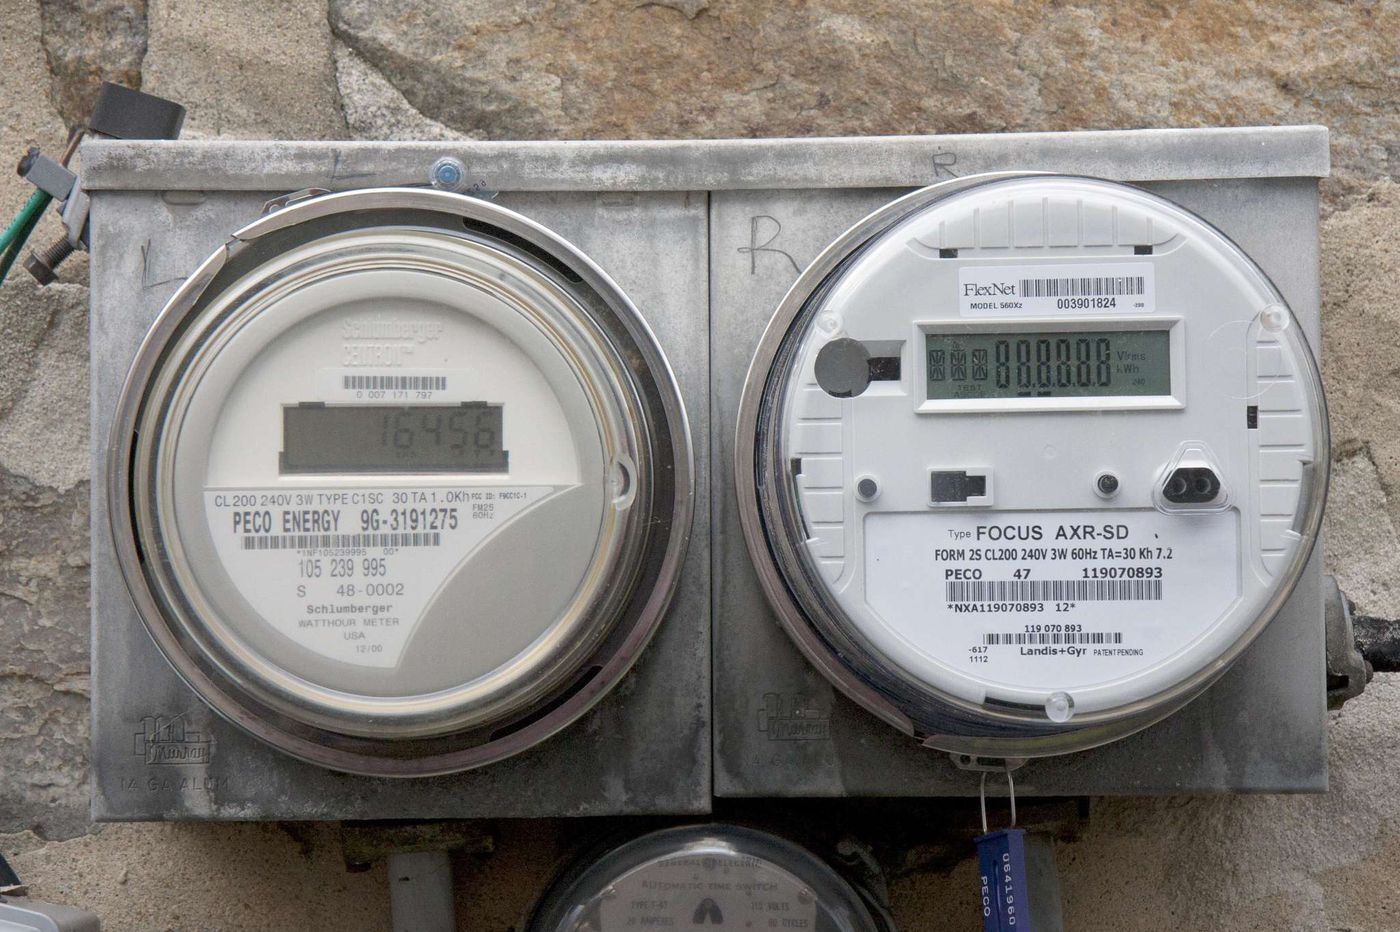 Extending statewide moratorium on utility shut-offs is the right call amid pandemic and recession | Editorial